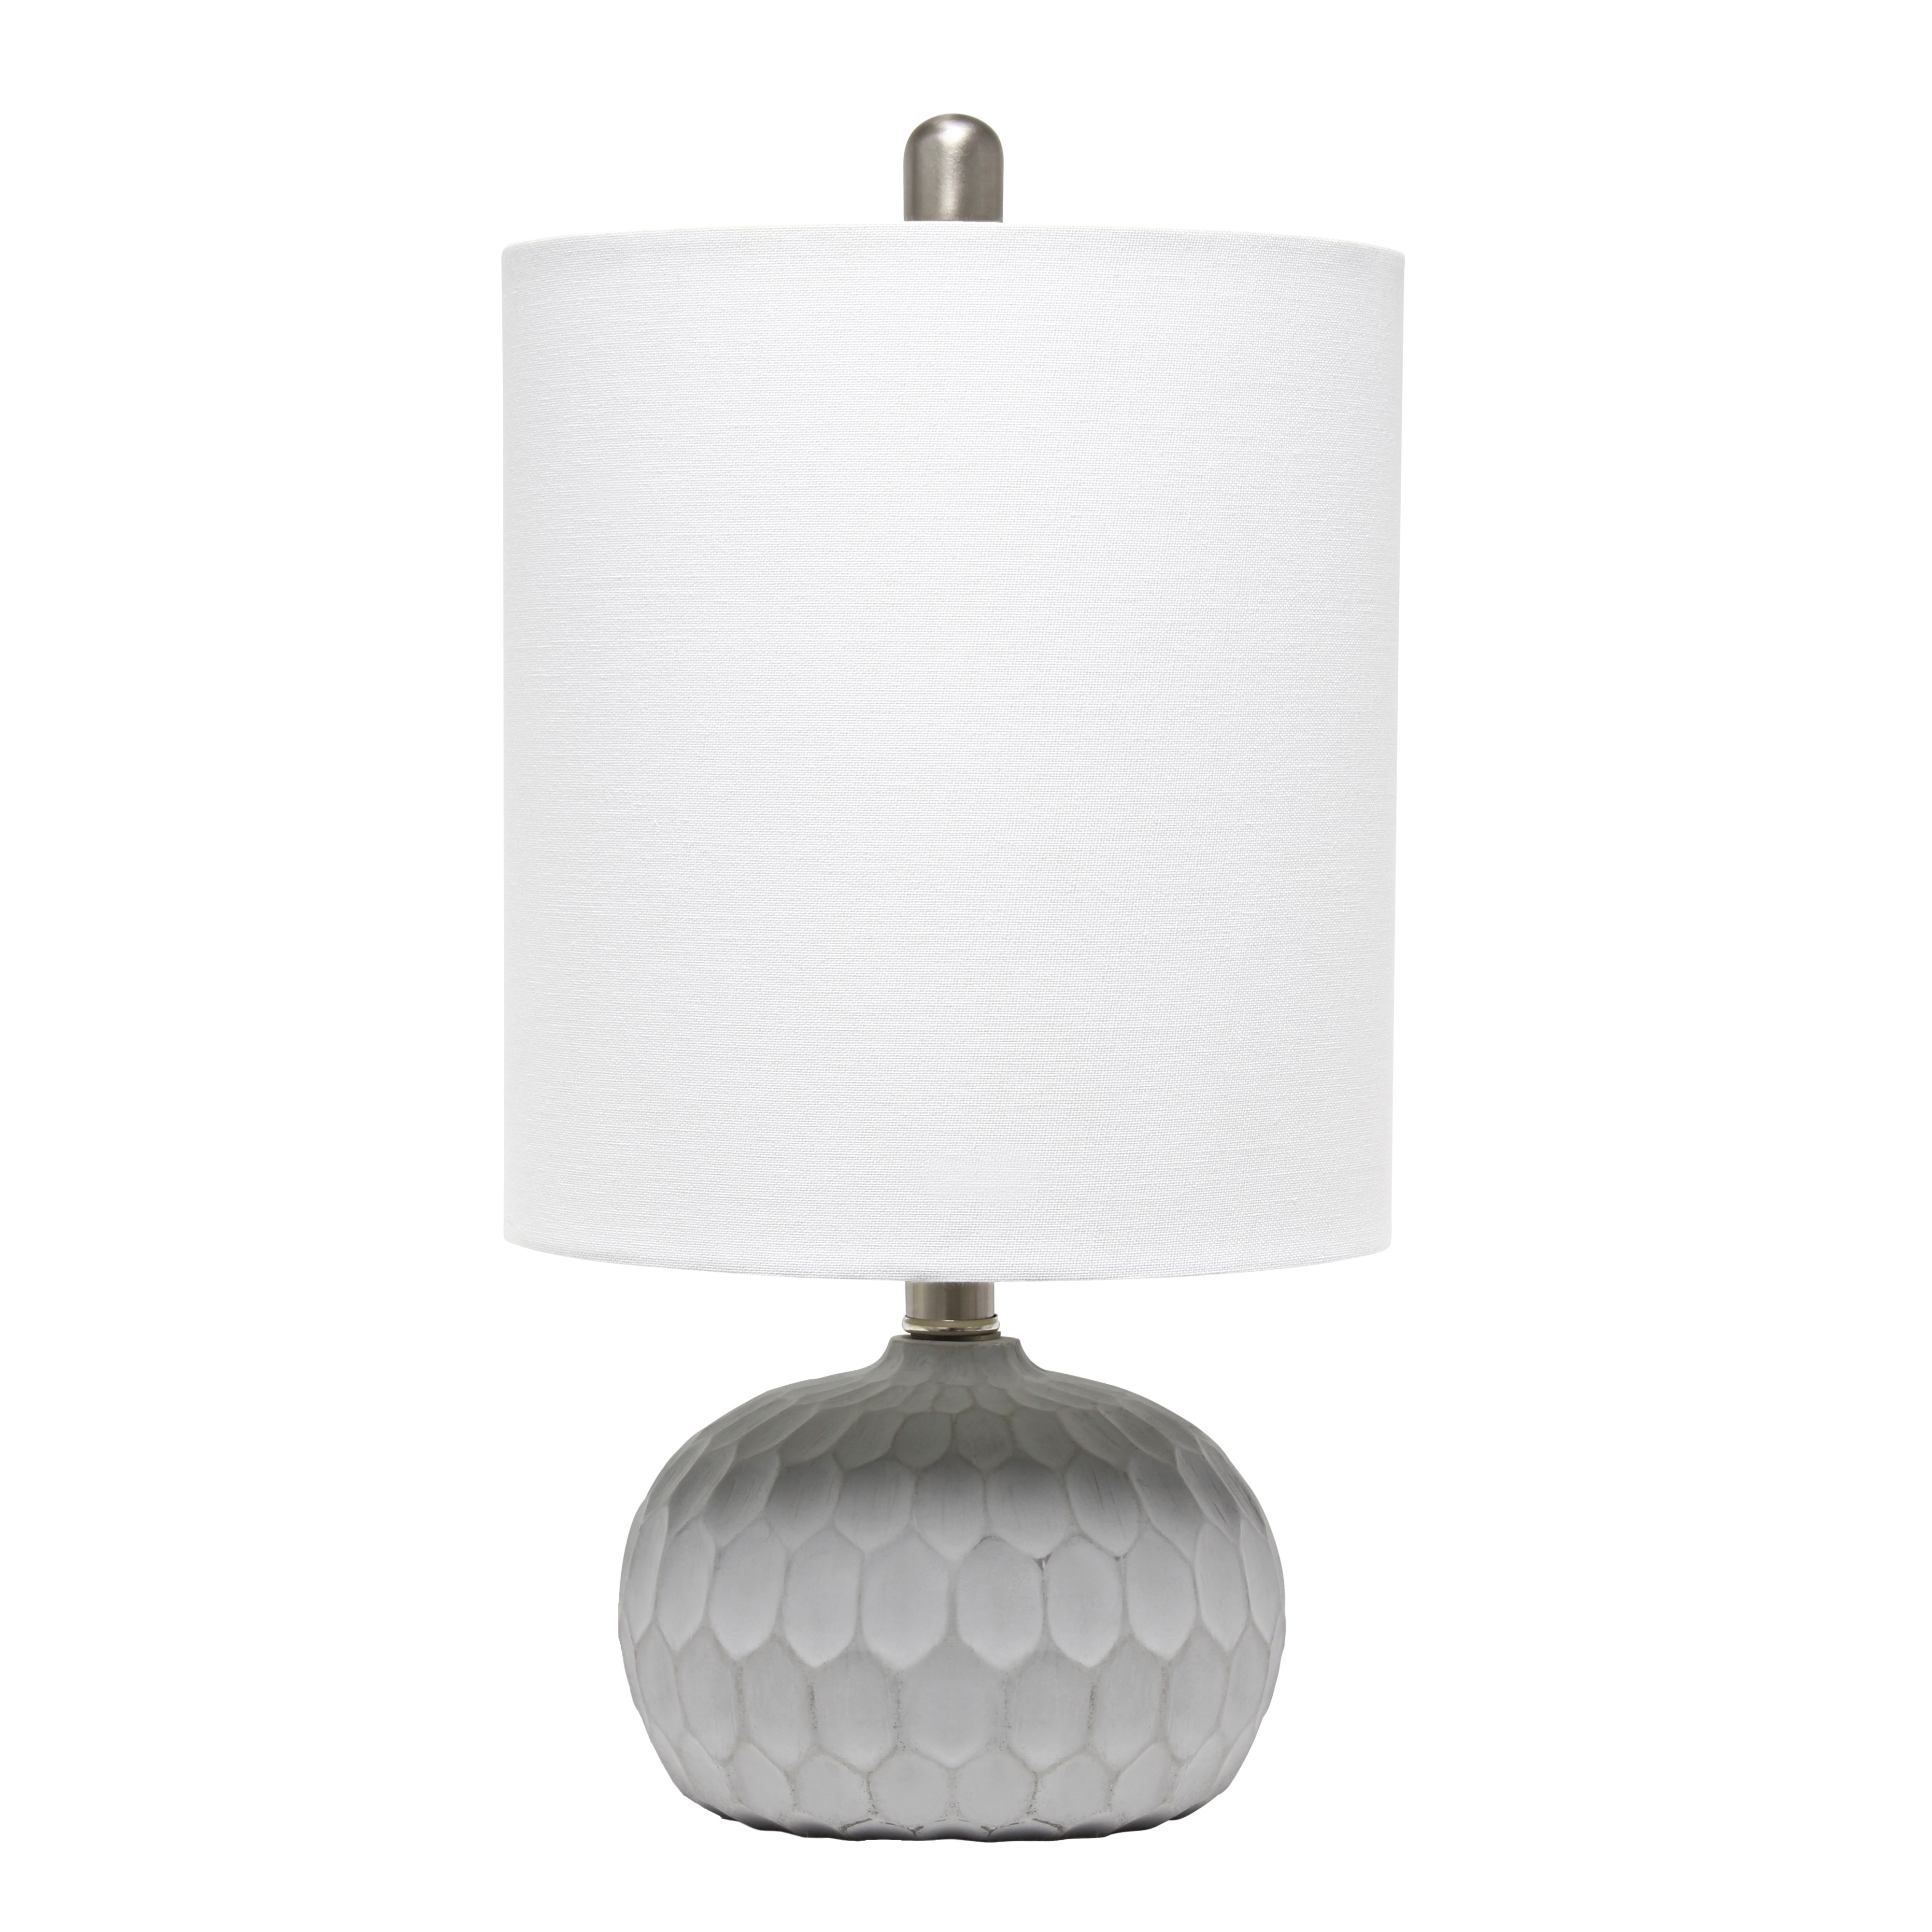 Lalia Home Concrete Thumbprint Table Lamp with White Fabric Shade